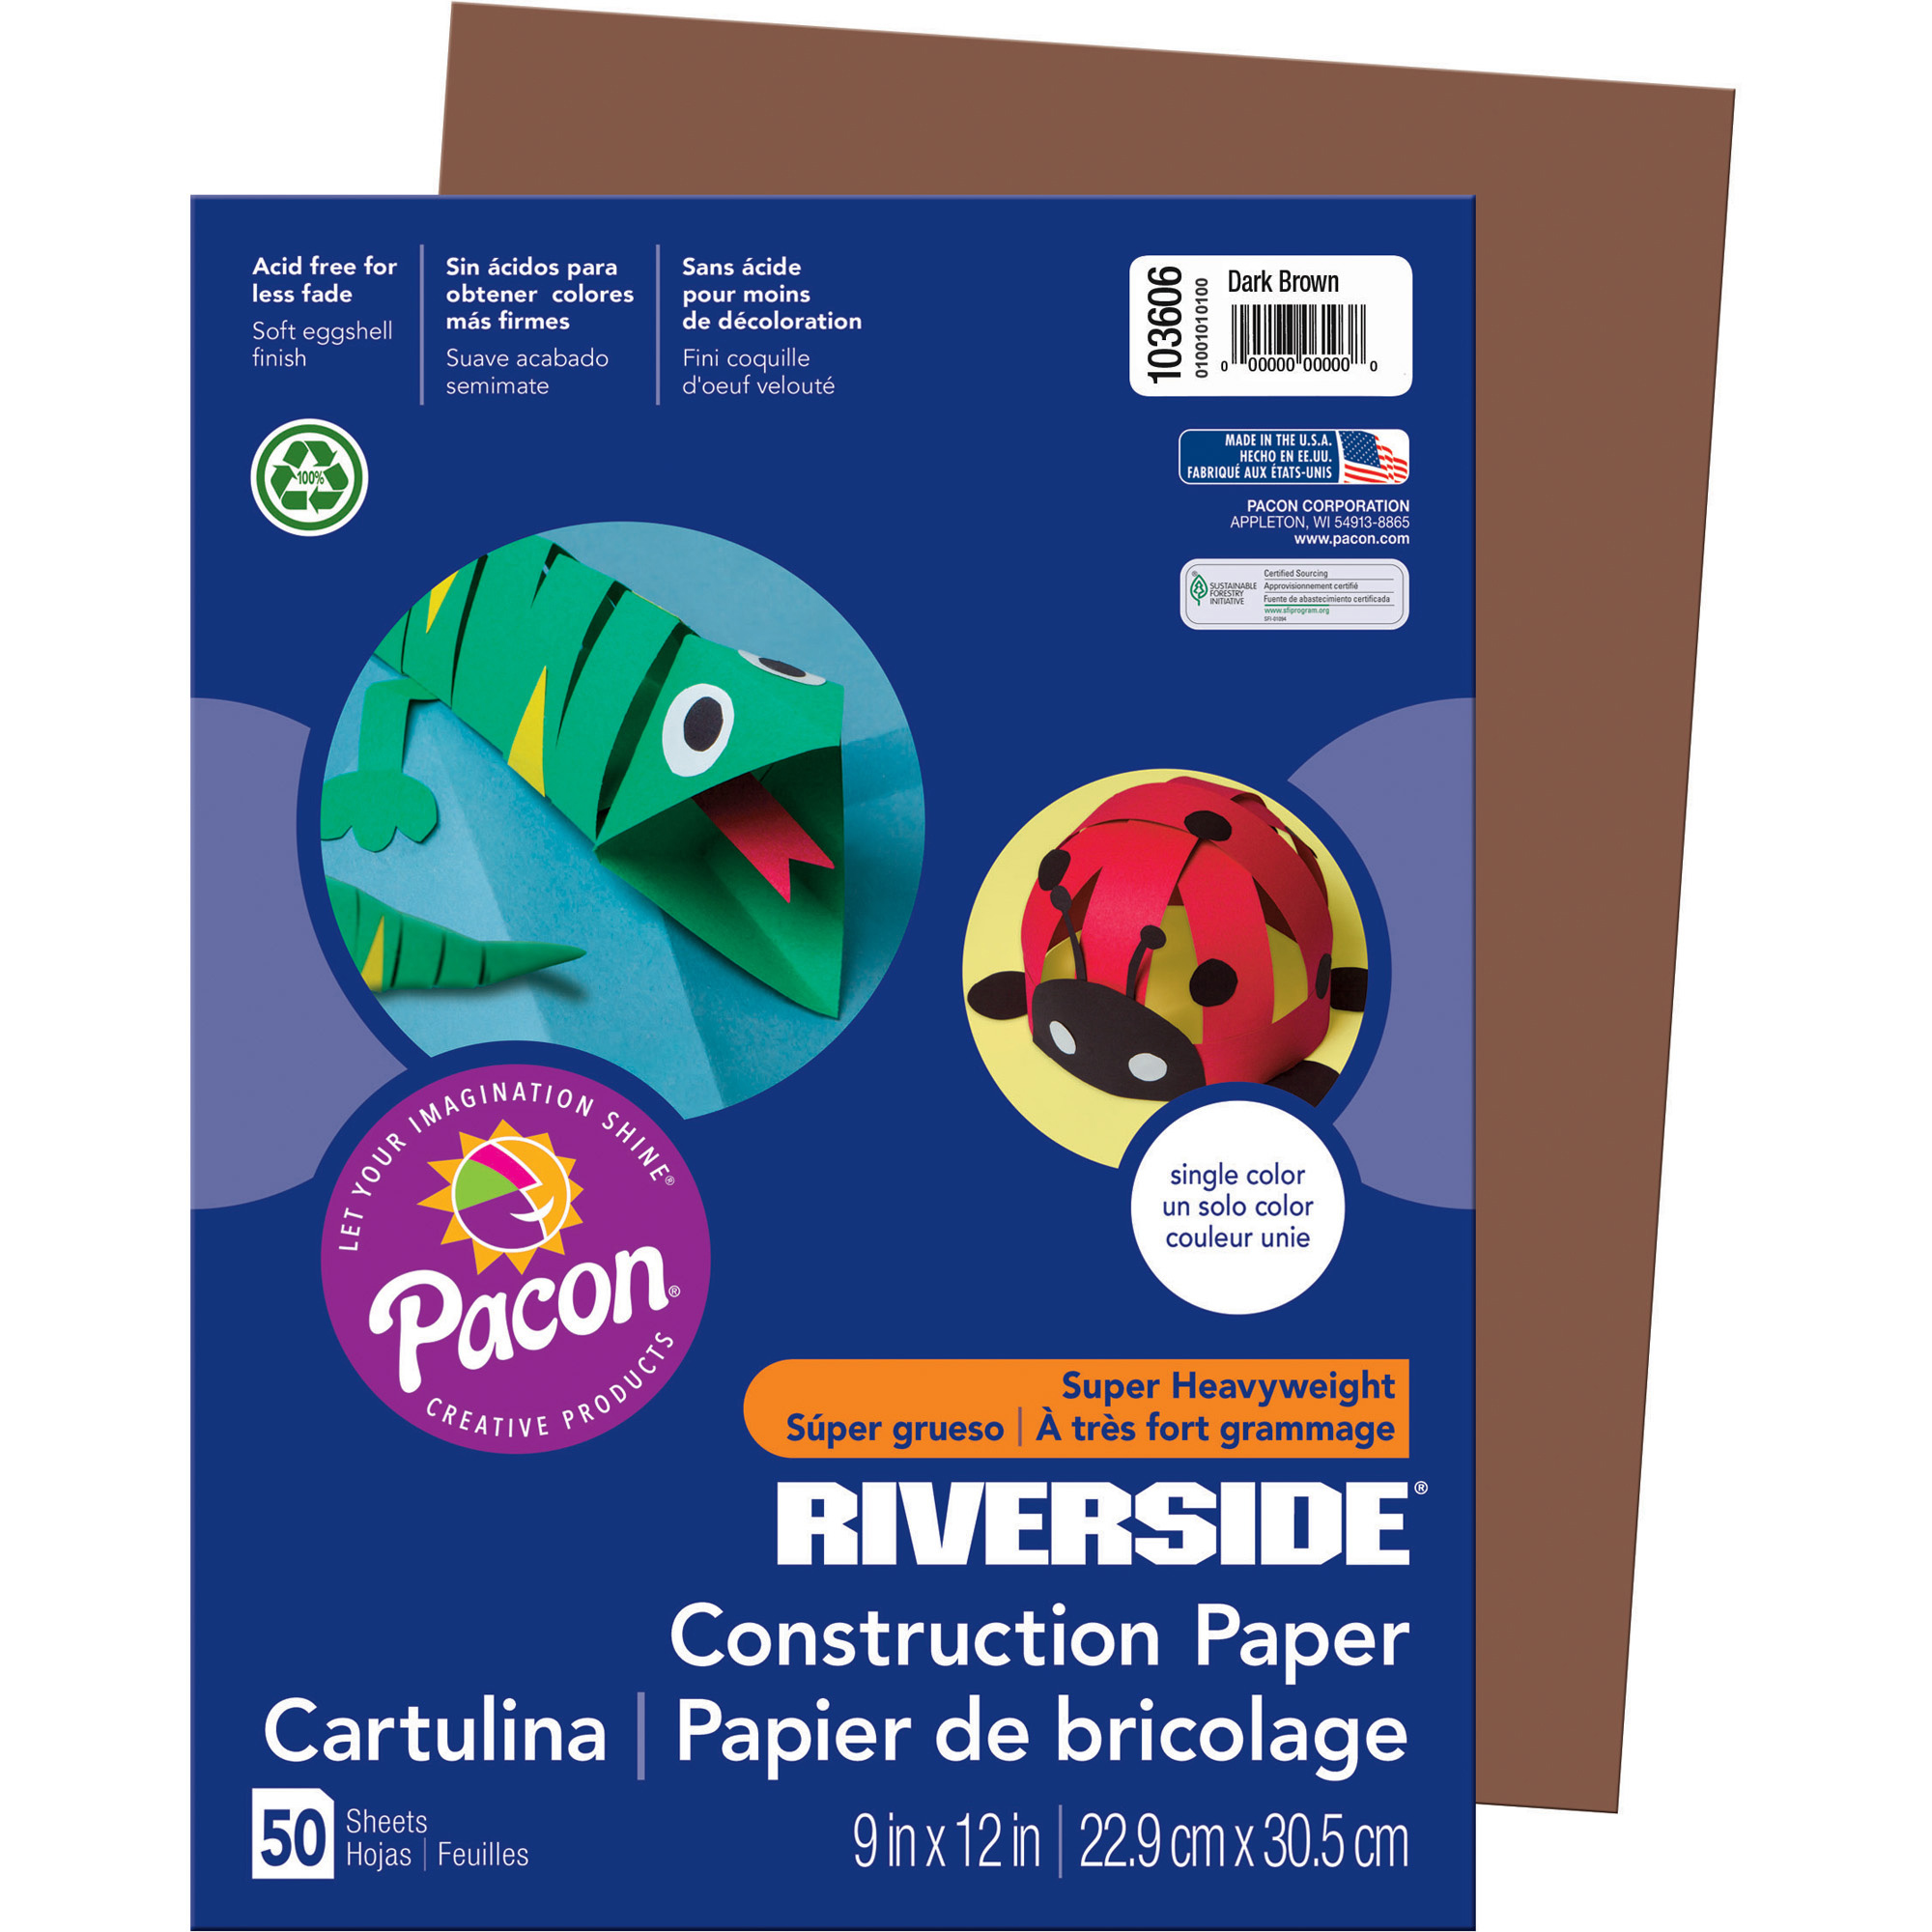 Pacon® Riverside® Construction Paper - Dark Brown(pack of 1)